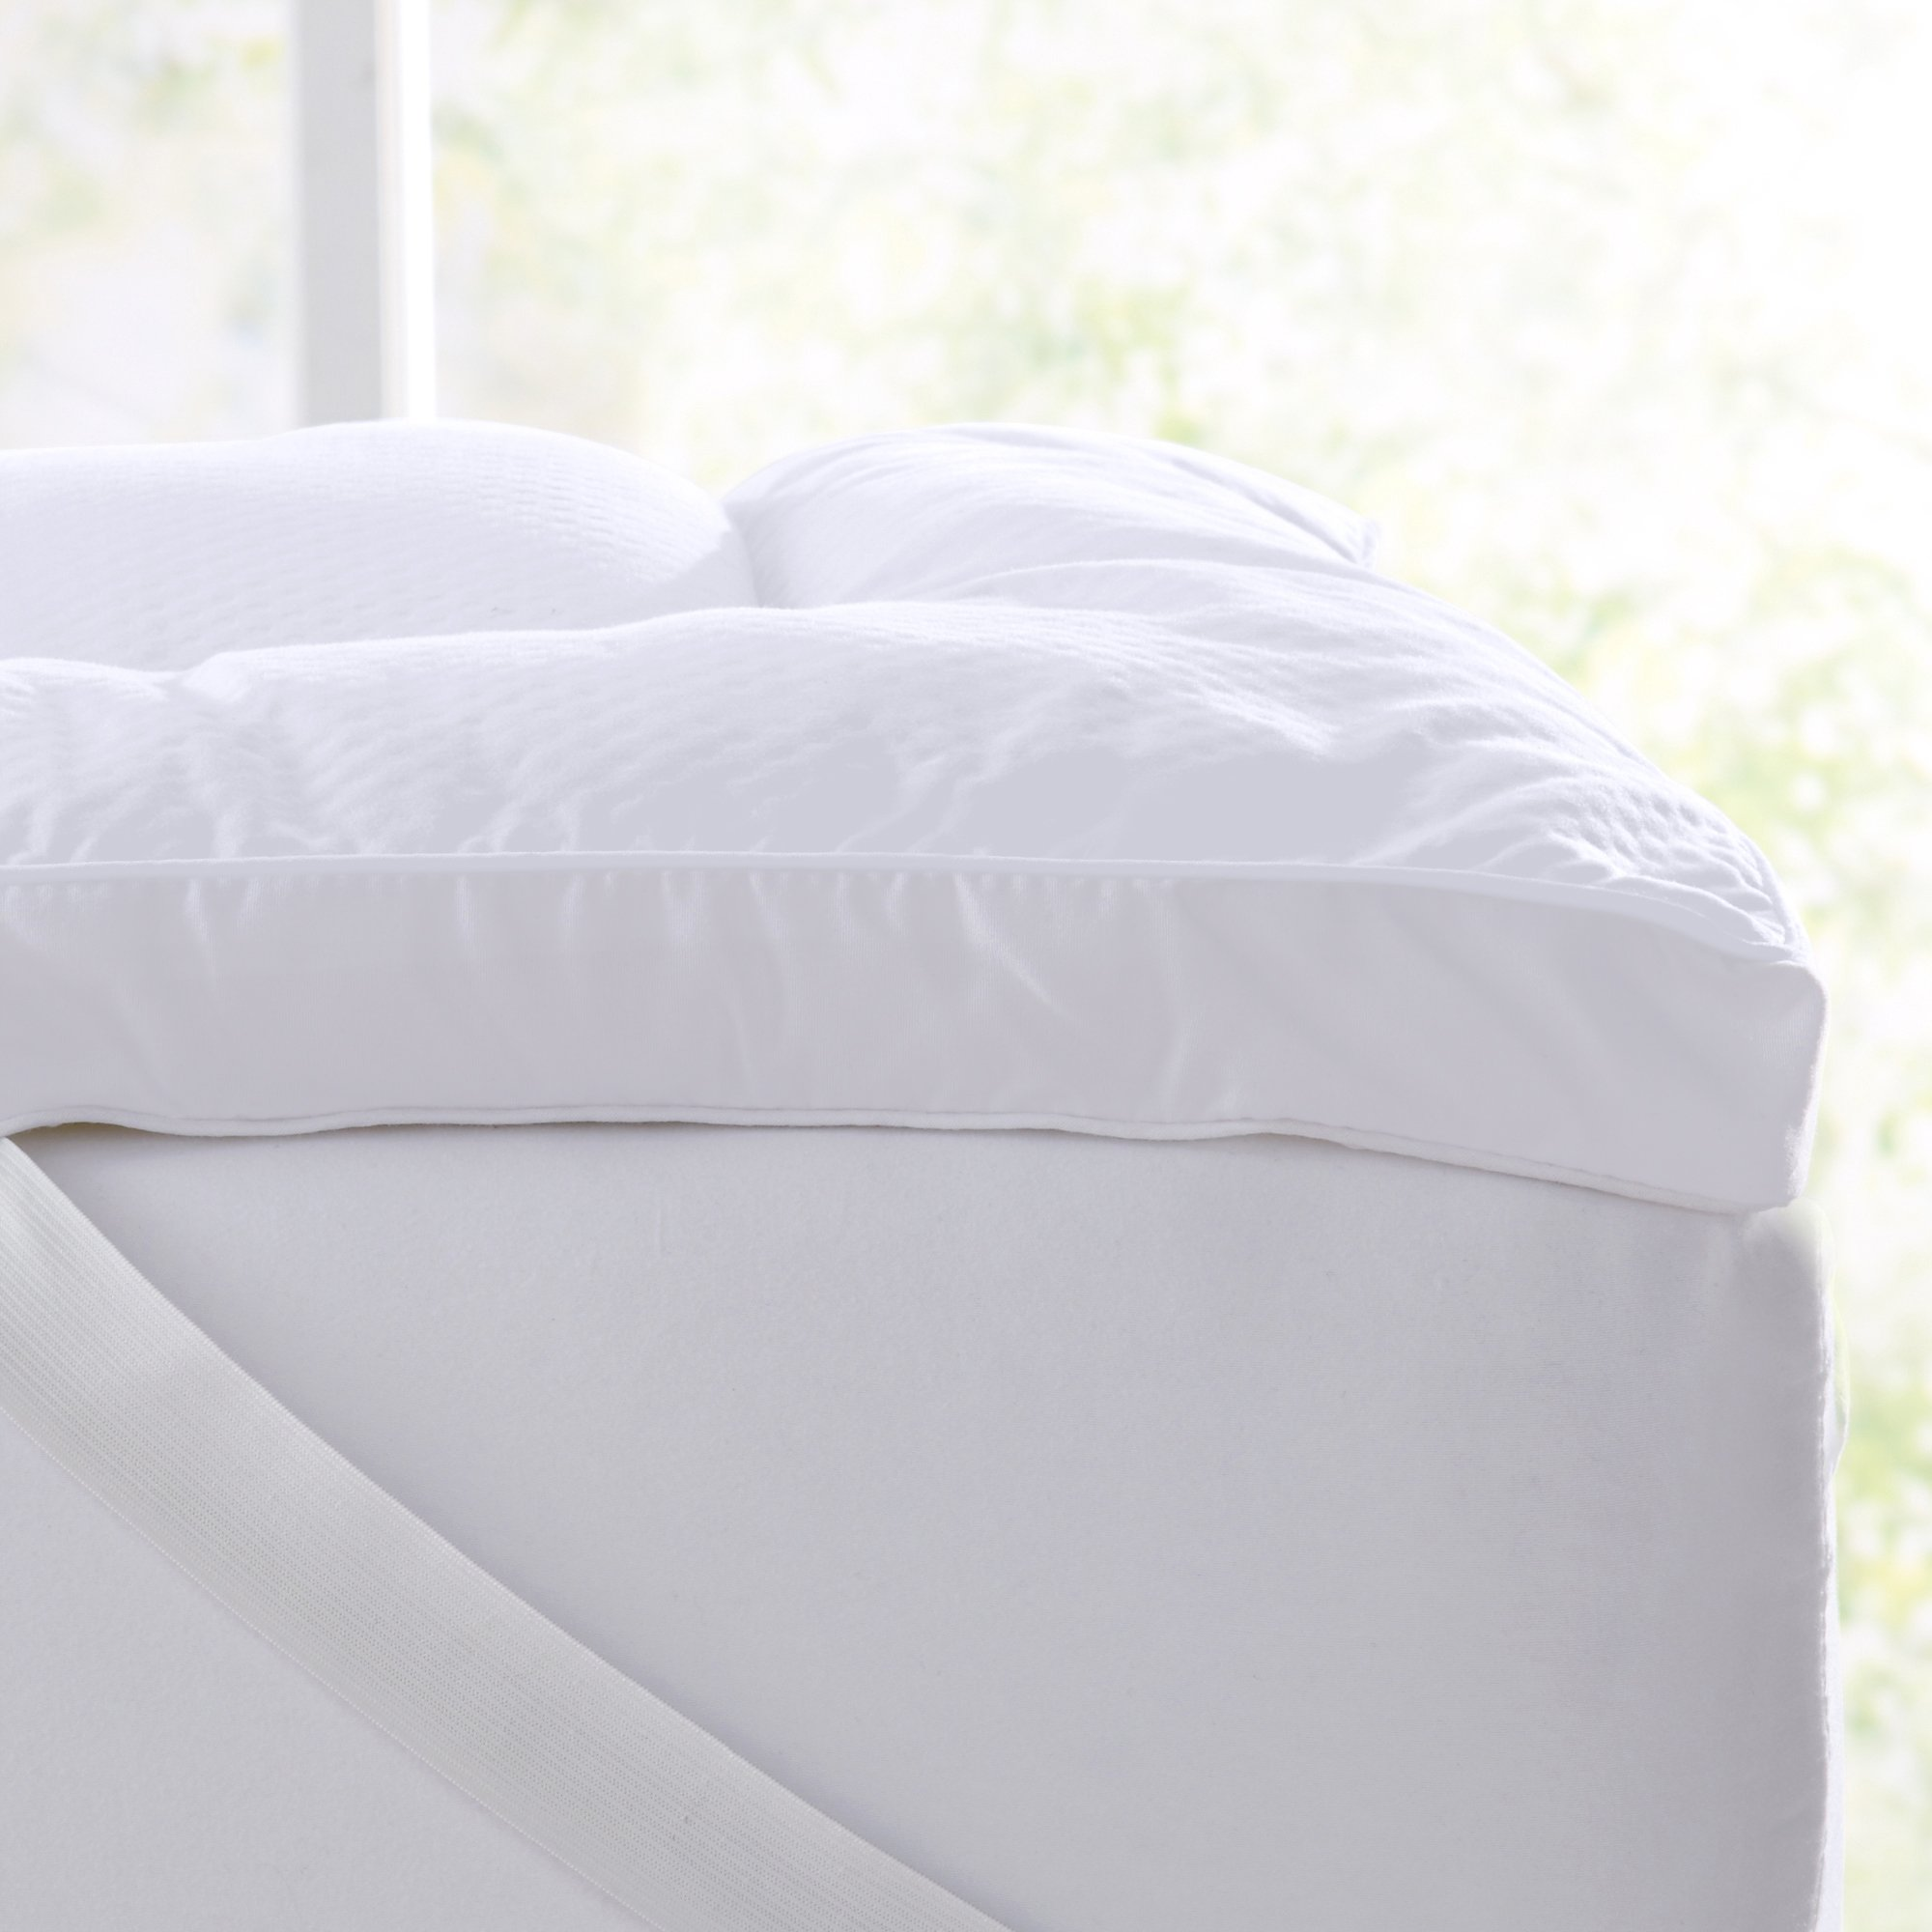 Great Bay Home Ultra-Soft King Mattress Topper. Hypoallergenic Down Alternative Featherbed- Plush 2 Inch Thick Mattress Pad Cover. Fits Mattresses up to 18'' Deep. By (King, White) by Great Bay Home